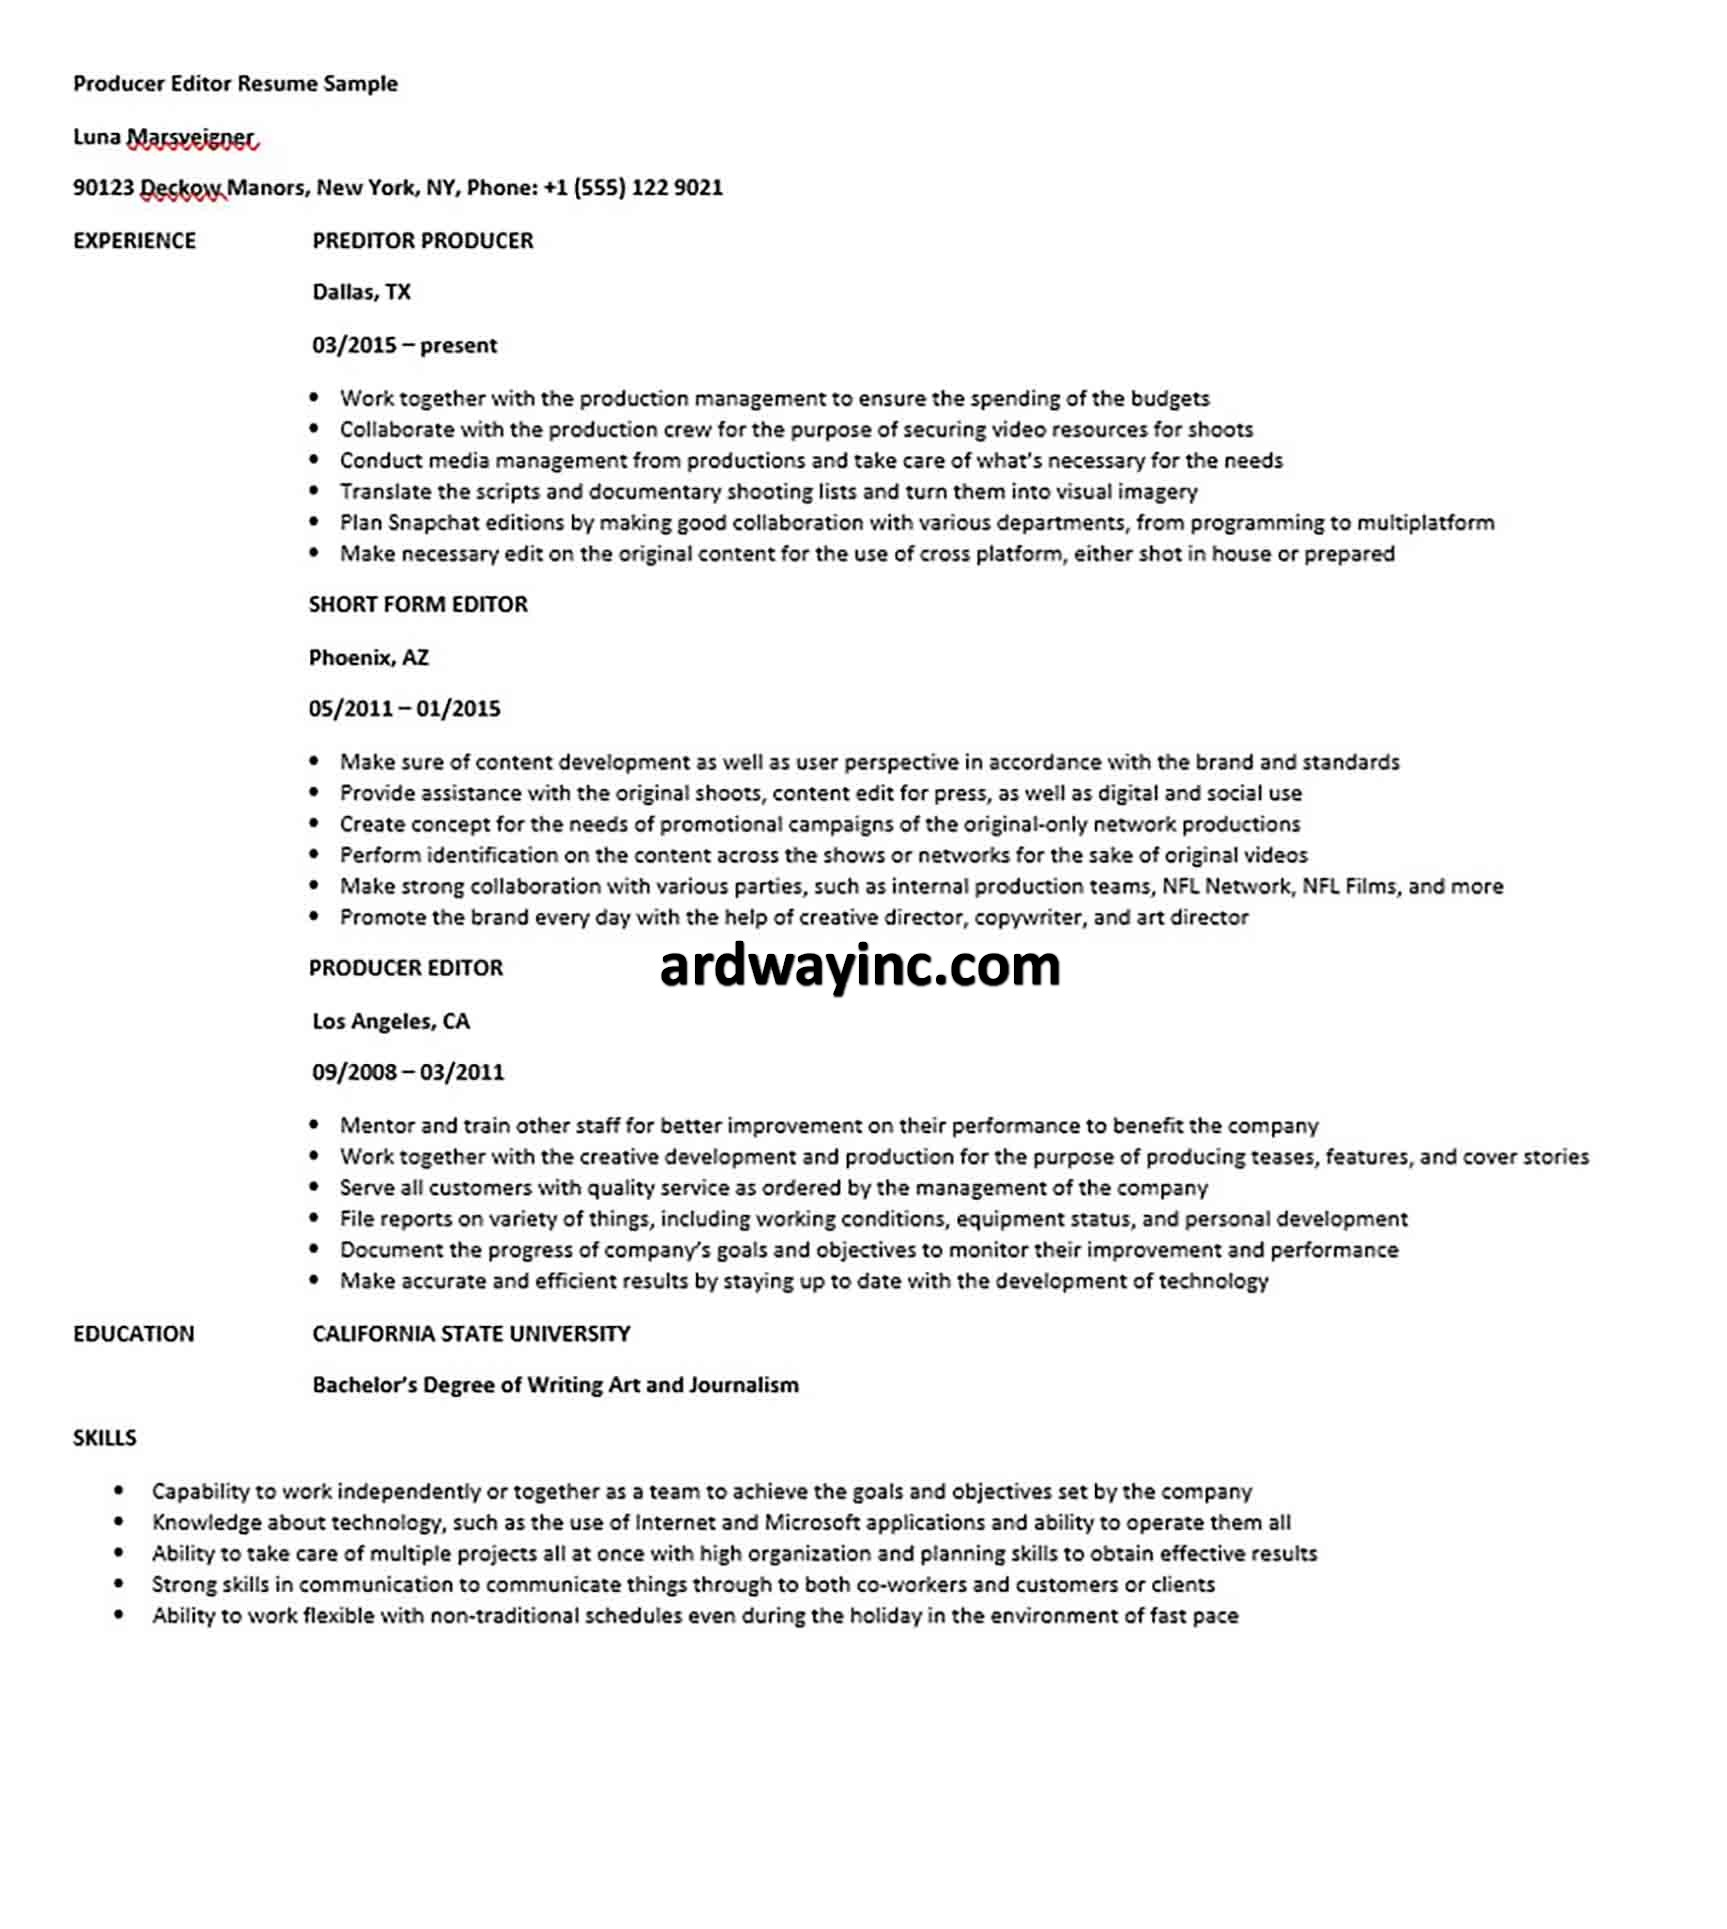 Producer Editor Resume Sample